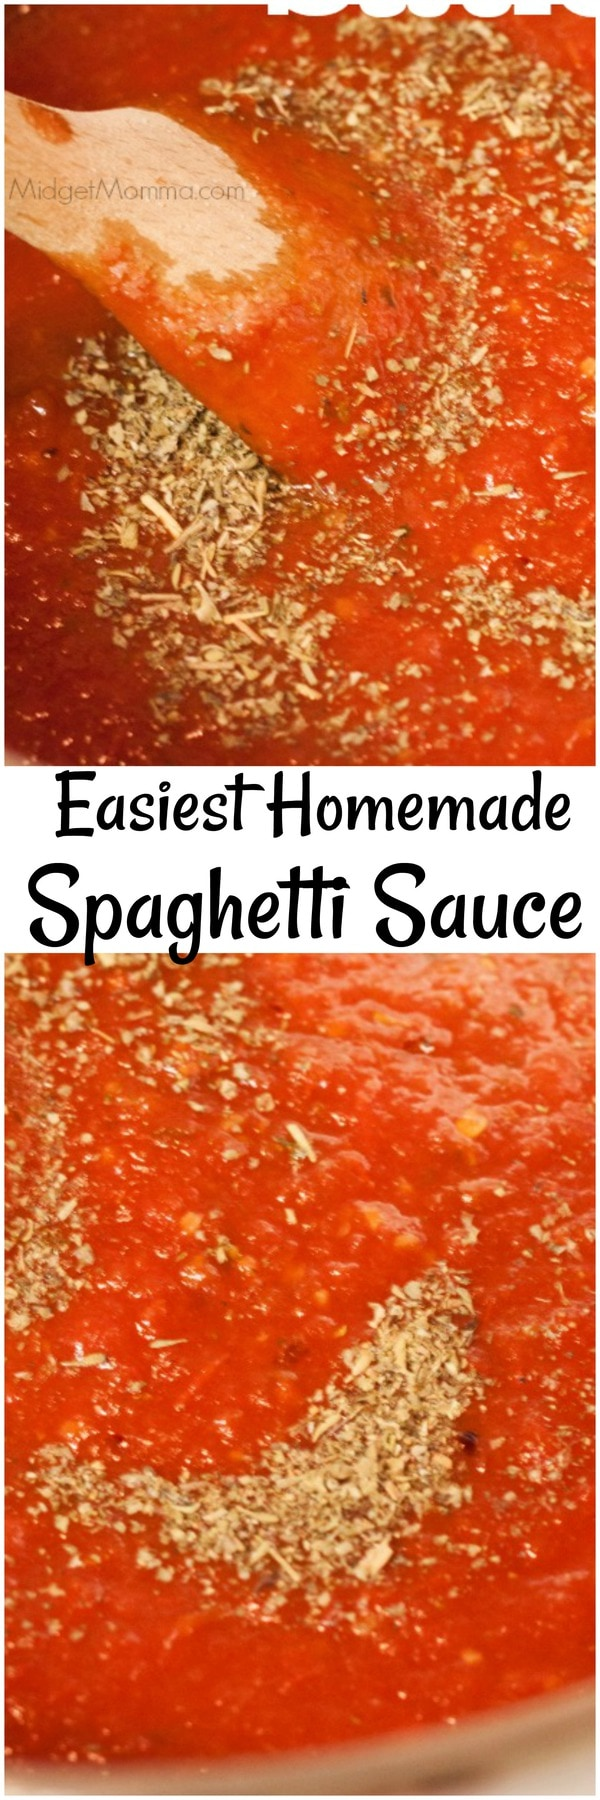 Homemade Spaghetti Sauce is easy to make, once you learn how you will never go back to buying sauce.With fresh ingredients and a few minutes its done. You can add meat to this homemade pasta sauce if you want to, just make sure you cook the meat before adding it to this easy to make spaghetti sauce recipe.